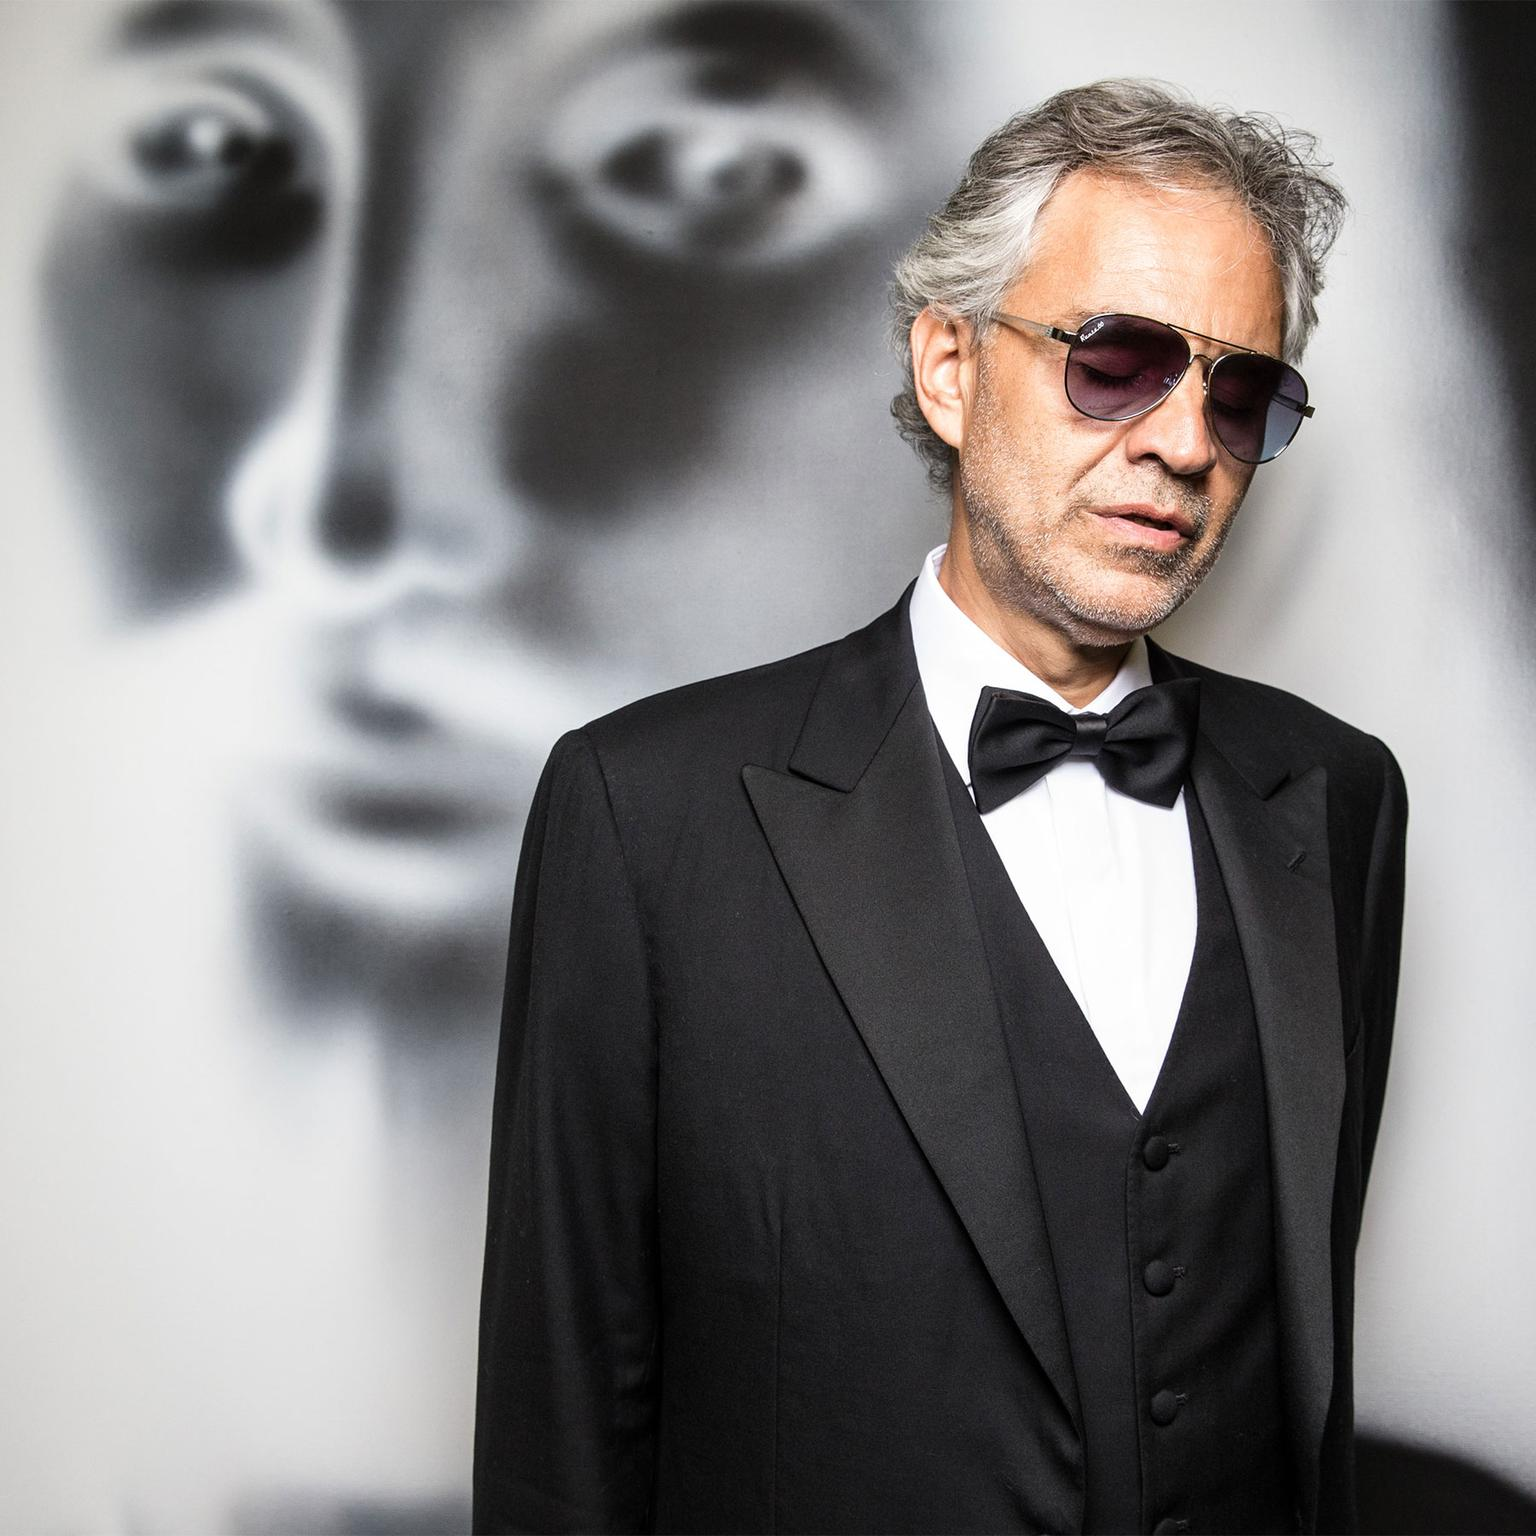 Andrea Bocelli at the Elton John AIDS Foundation